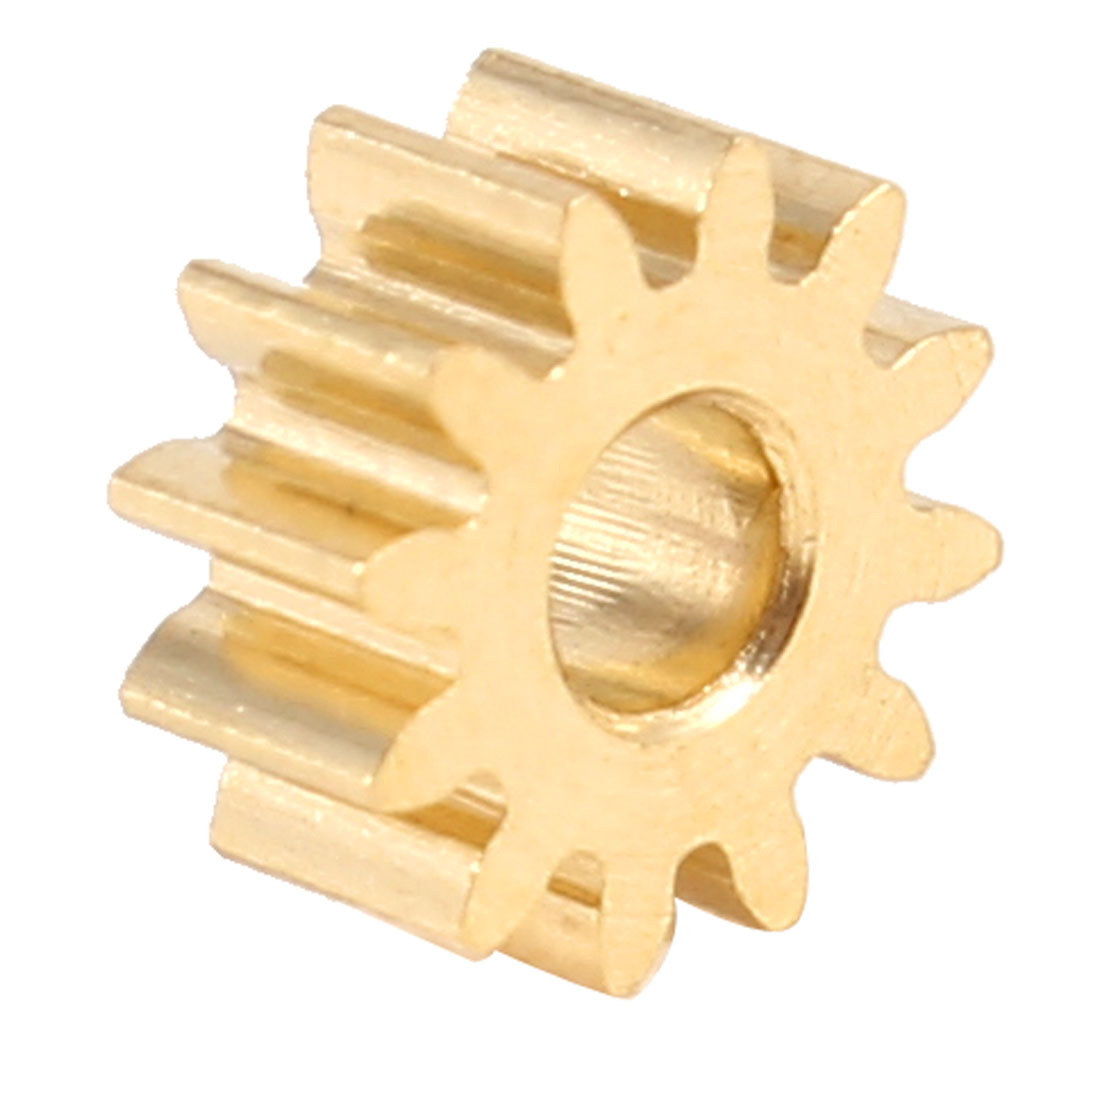 M0.4x12T 12 Teeth 2mm Dia Shaft Hole DC Gearbox Motor Drive Gear Gold Tone